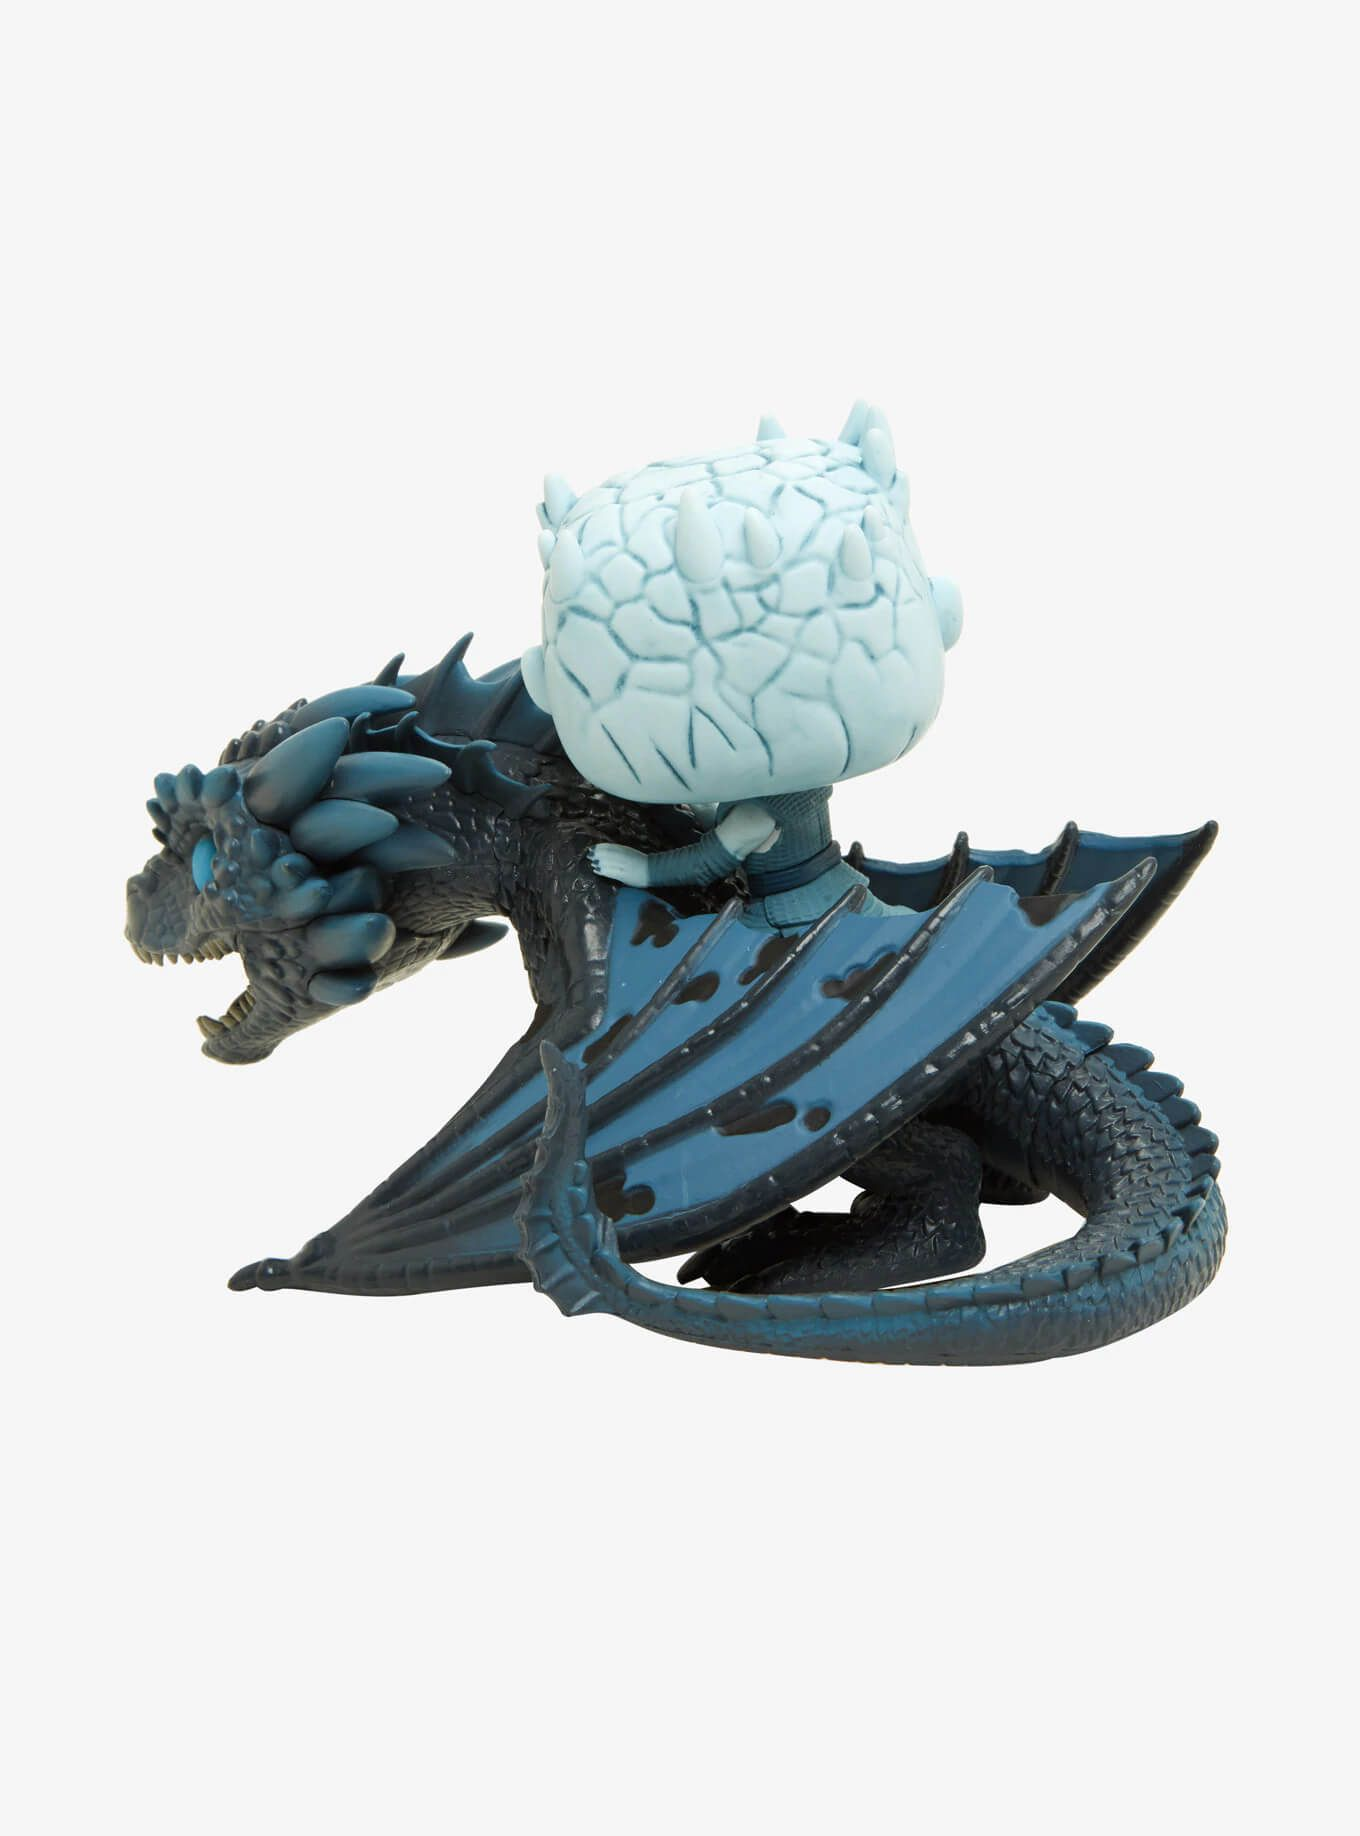 Night King & Icy Viserion #58 - Game of Thrones - Funko Pop! Rides